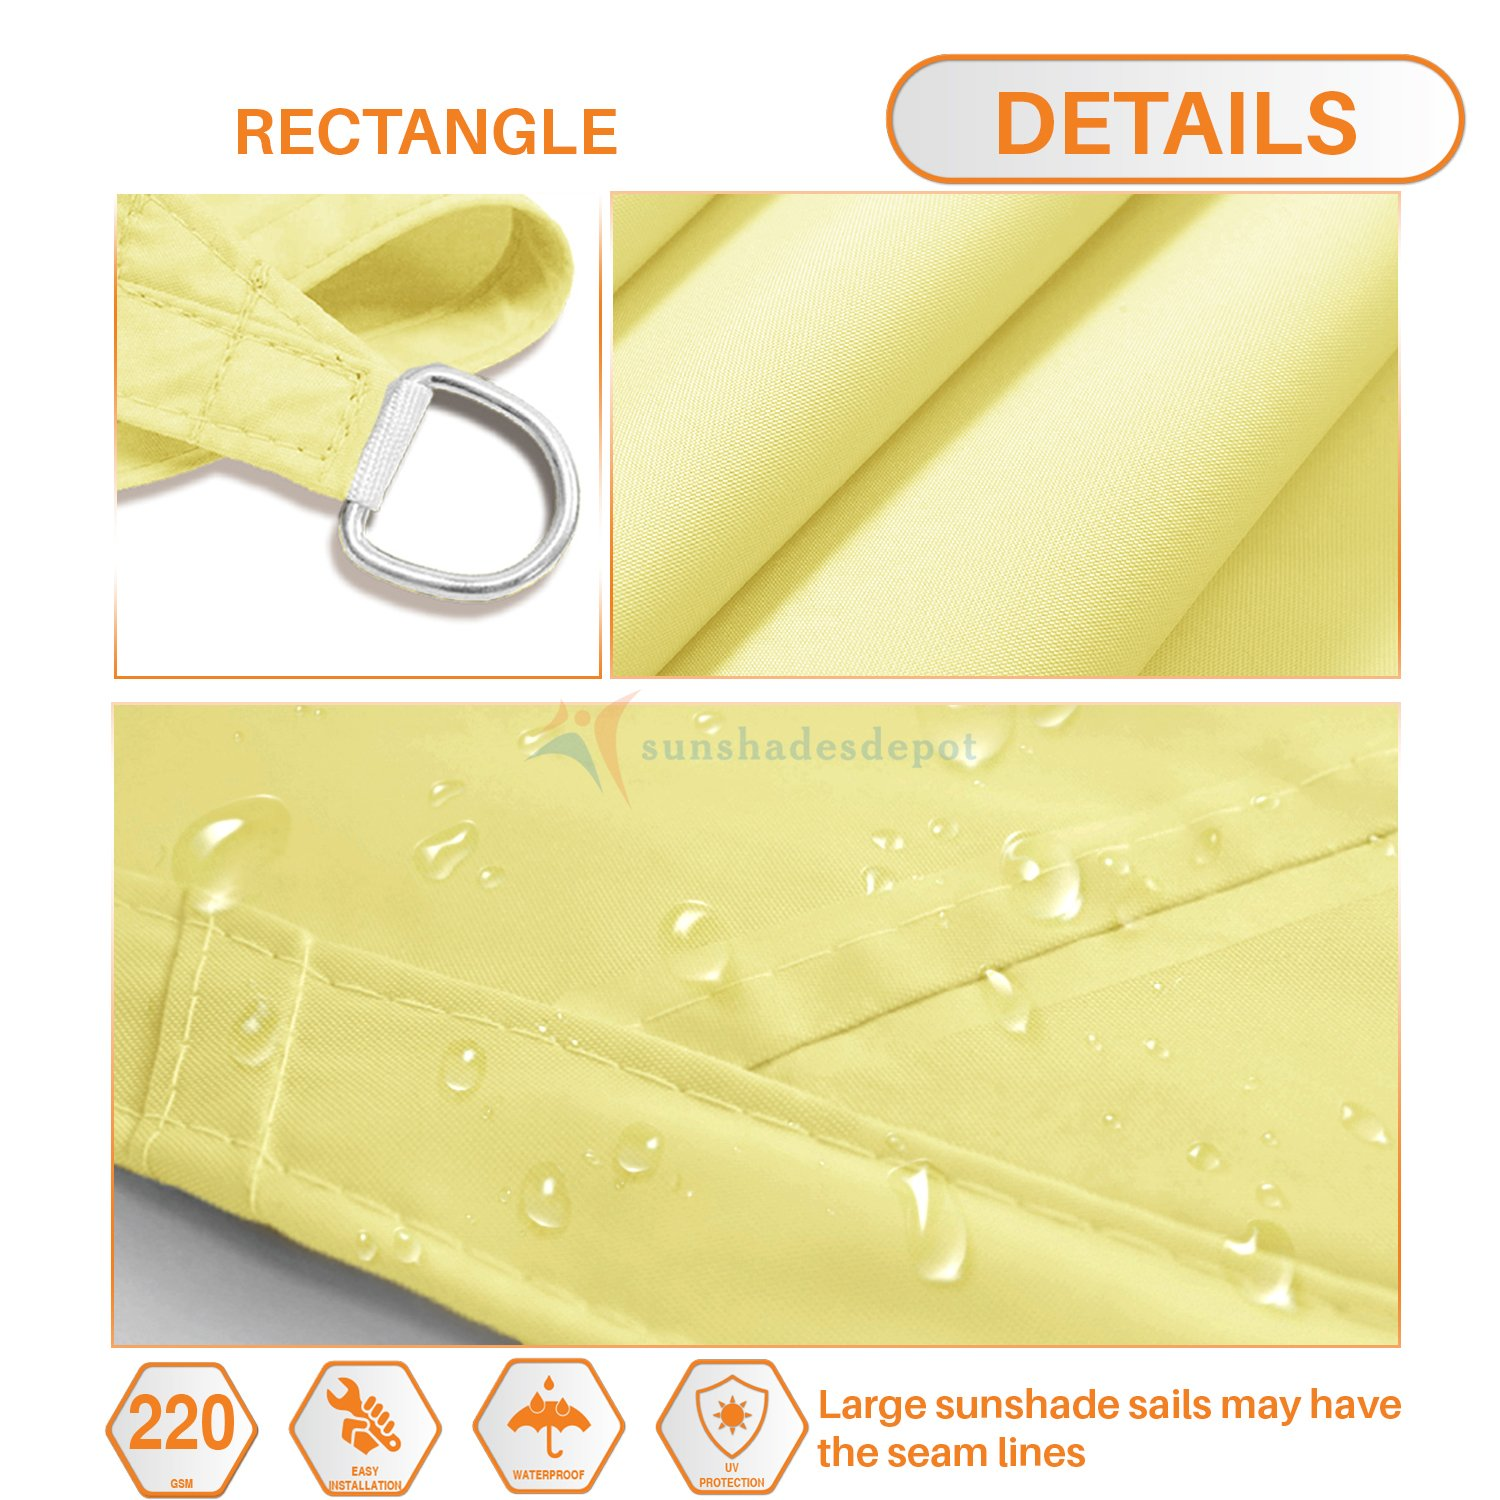 Sunshades Depot 16 x 16 Square Waterproof Knitted Shade Sail Curved Edge Canary Yellow 220 GSM UV Block Shade Fabric Pergola Carport Canopy Replacement Awning Customize Available